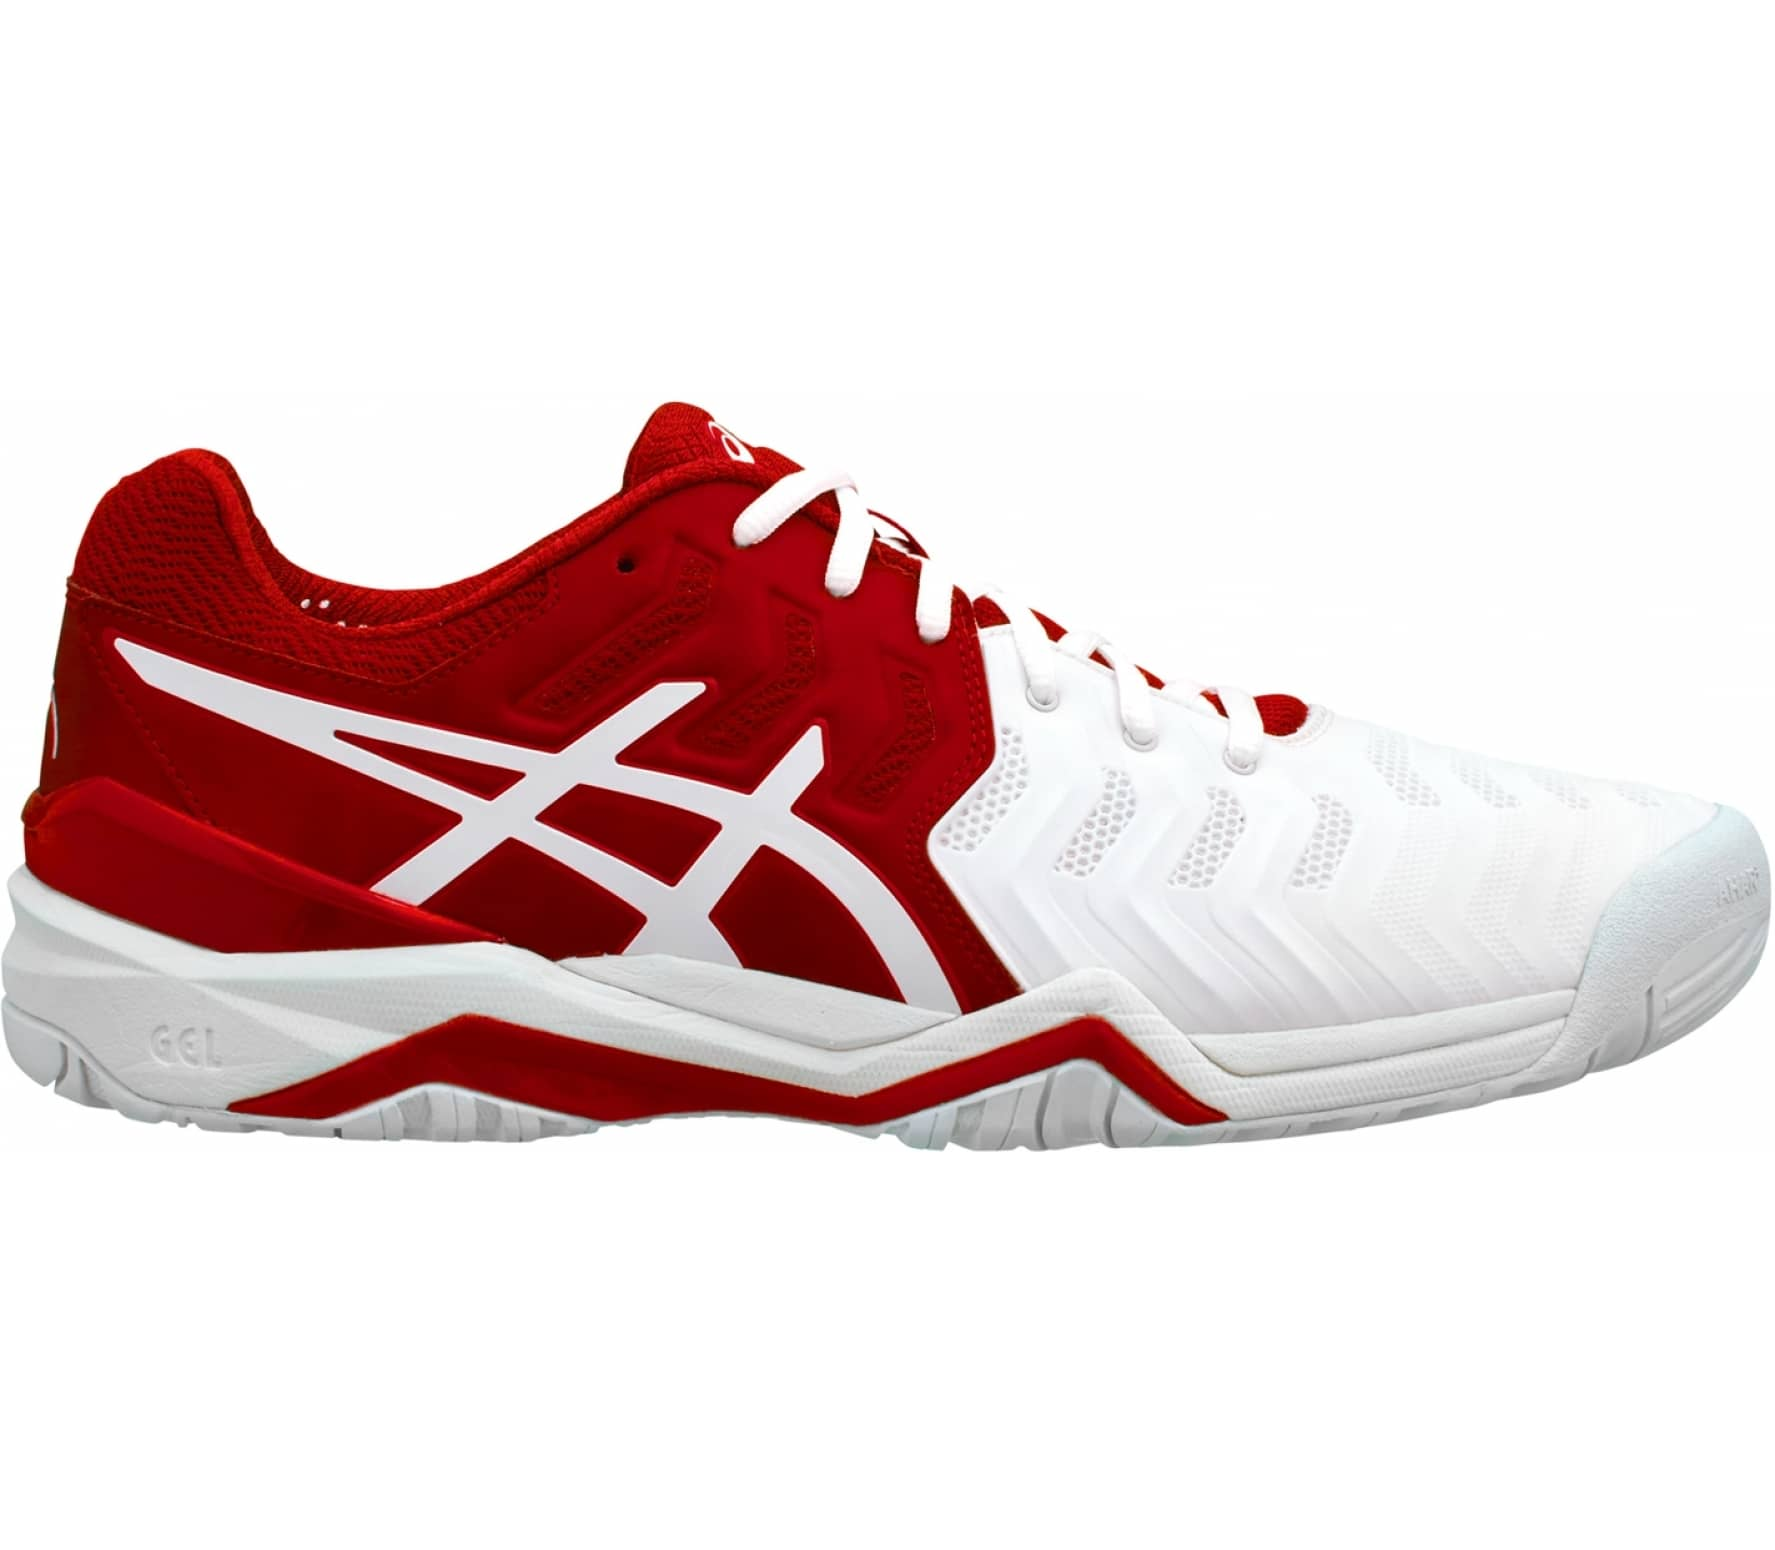 ASICS - Gel-Resolution Novak Herr Tennisskor (röd) - EU 40,5 - US 7,5